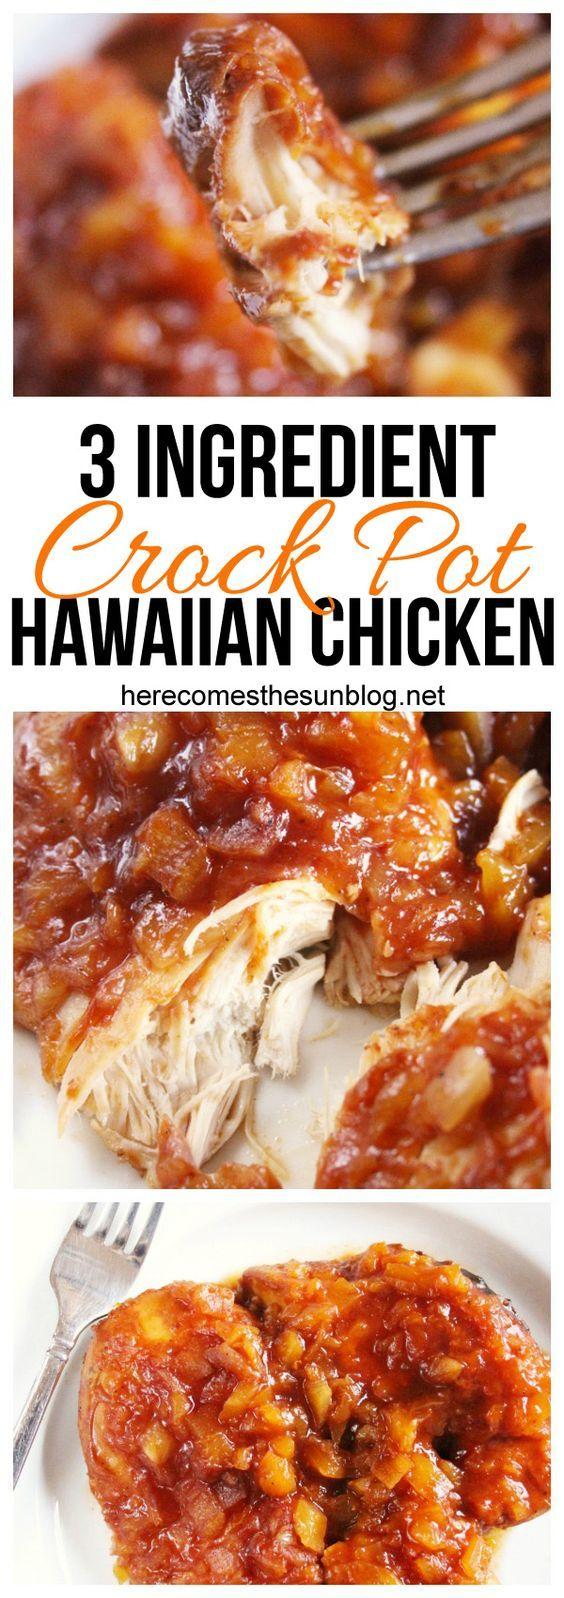 Best 25 chicken ideas on pinterest chicken recipes for Best healthy chicken crock pot recipes